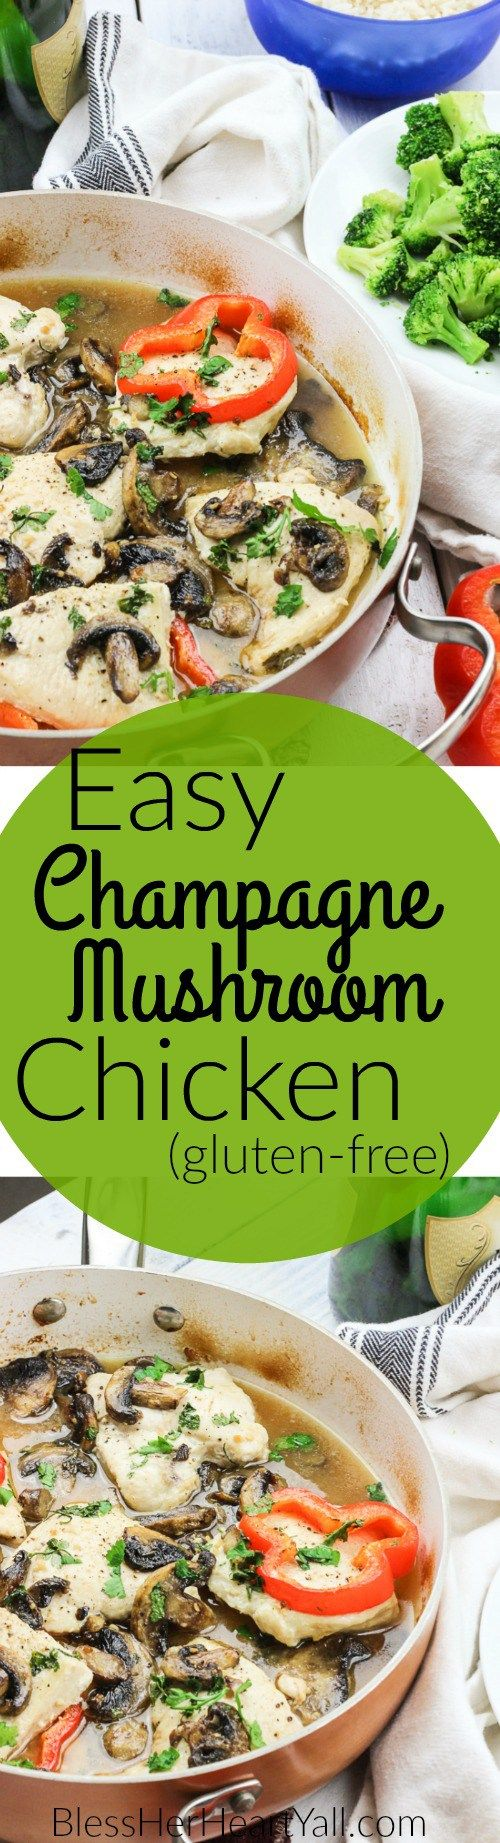 Champagne Mushroom Chicken || Already dreaming about this easy gluten-free one-pot dinner (and sipping on the extra bubbly!)!!! Is that bad? www.blessherheartyall.com